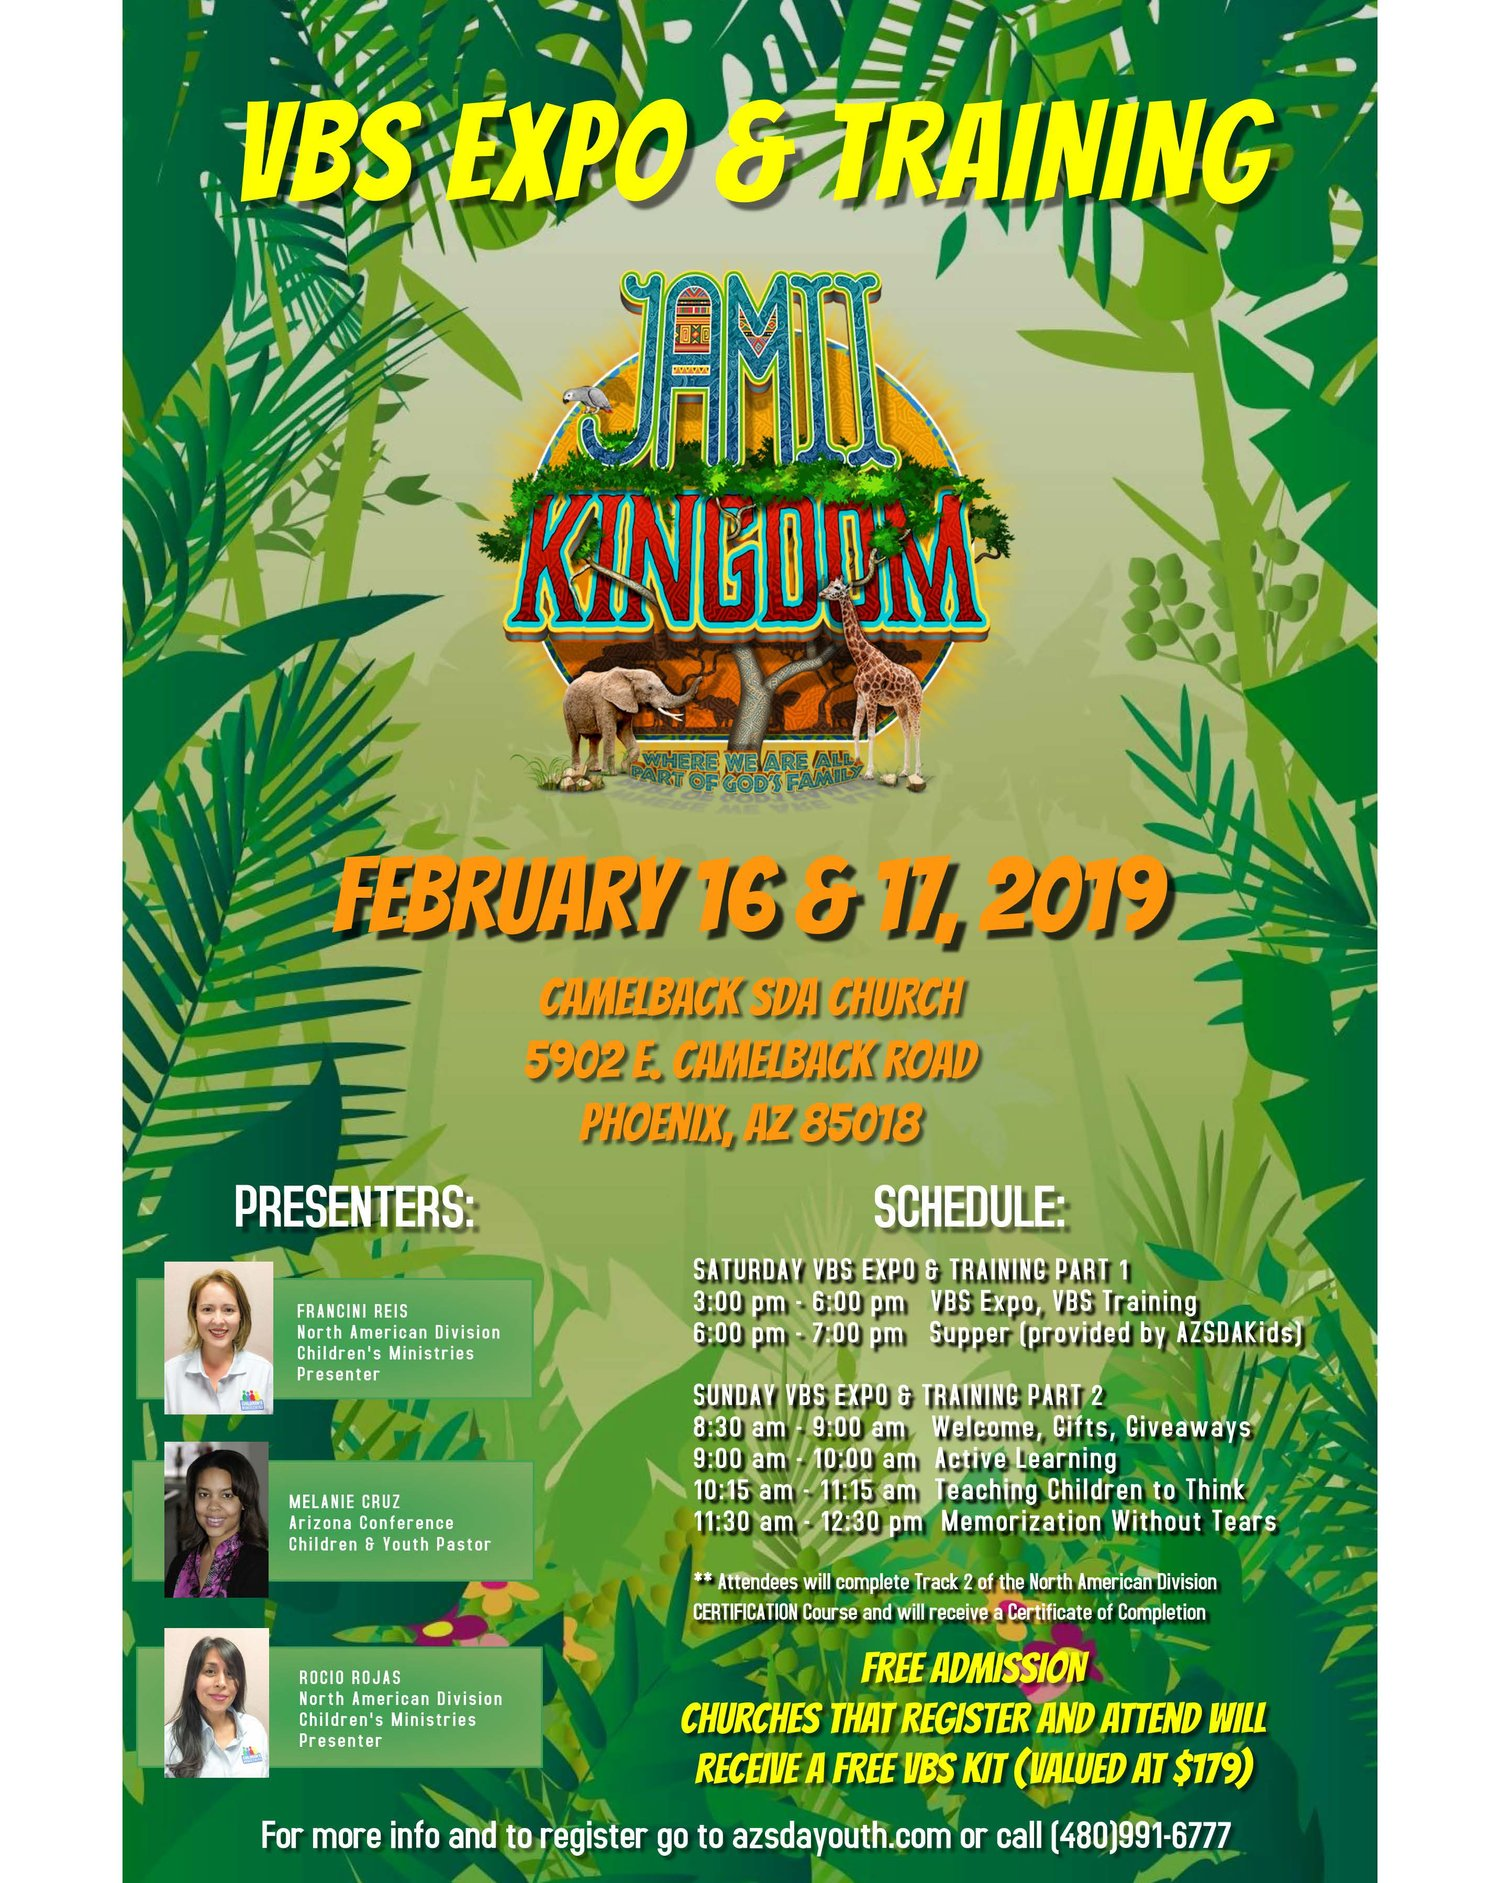 AZ Conference VBS Expo & Training — CHILDREN'S MINISTRIES